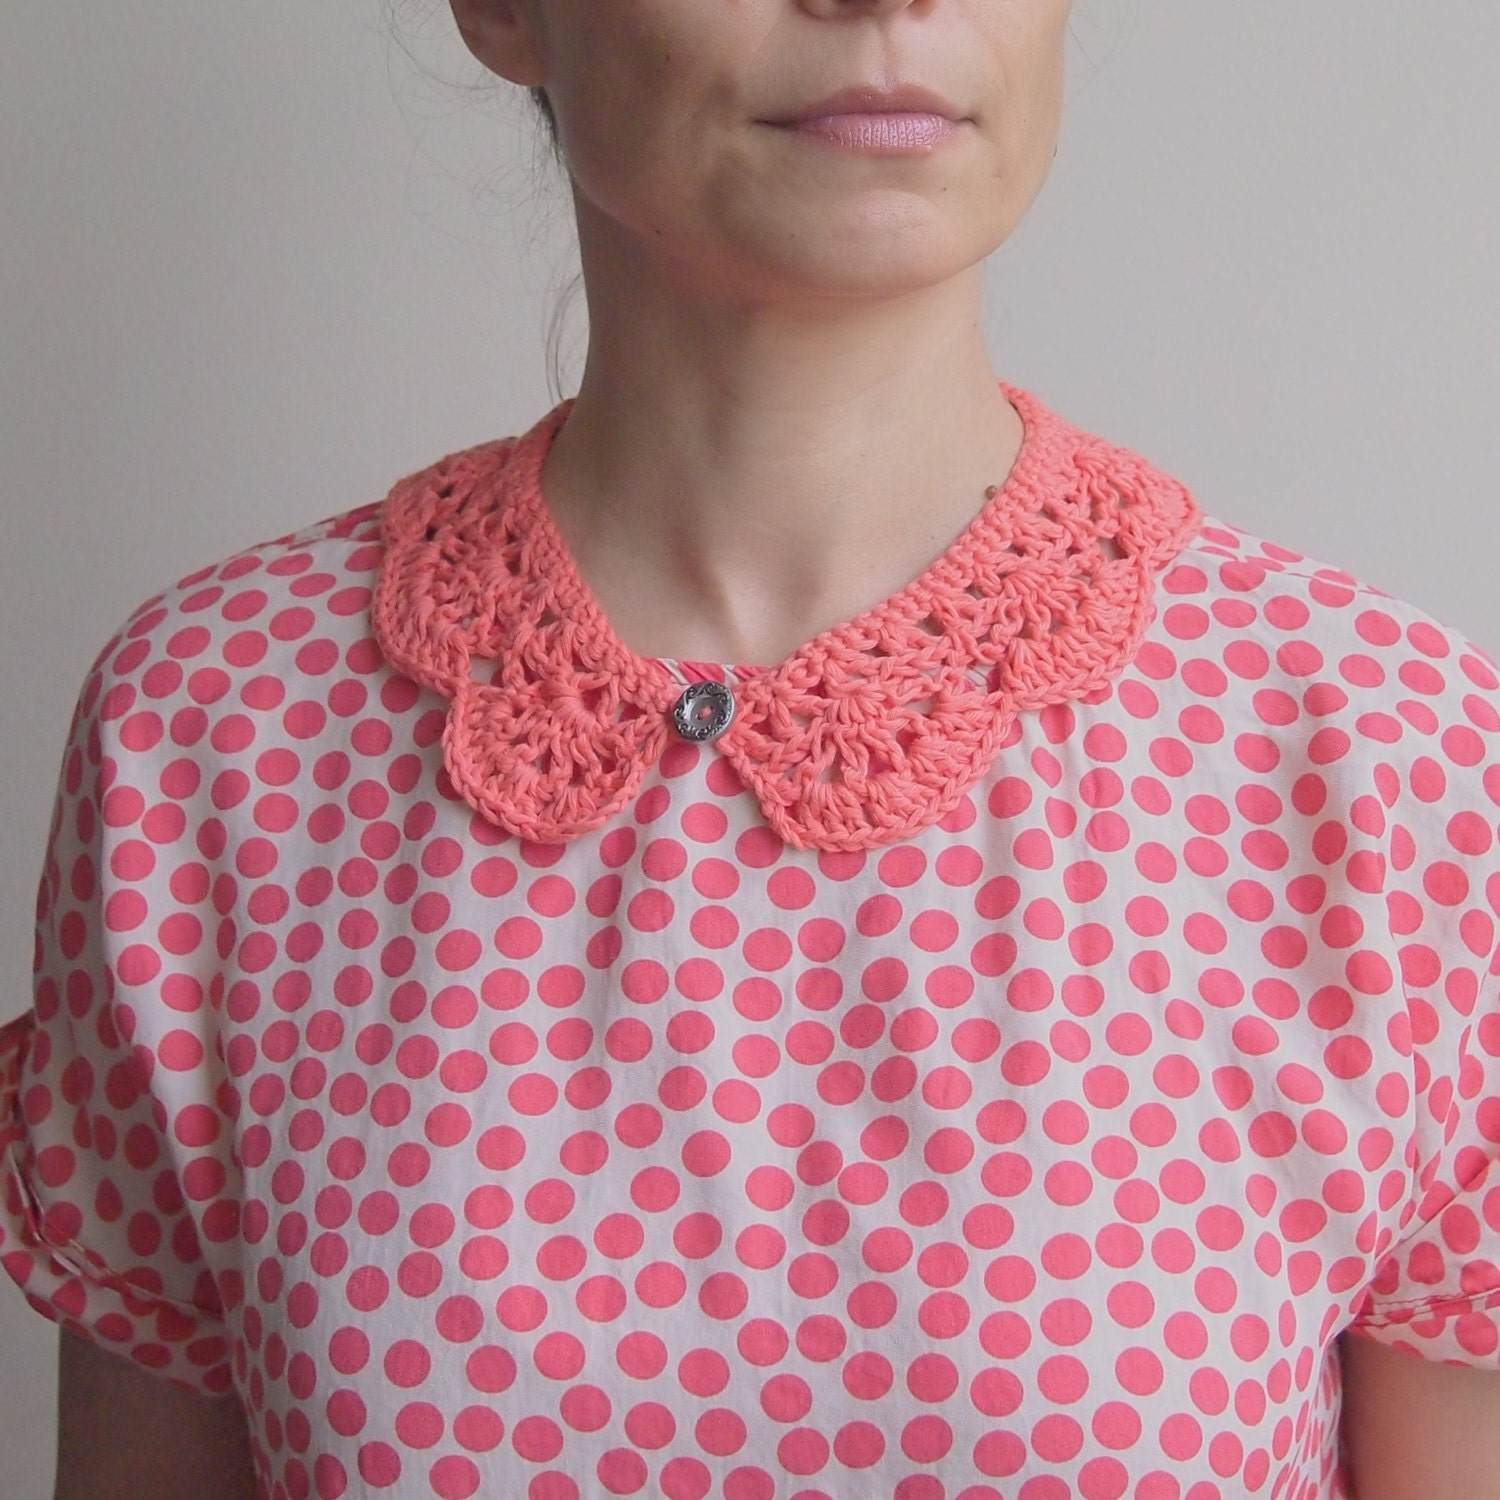 Crochet collar pattern girl peter pan collar crochet cowl zoom bankloansurffo Image collections